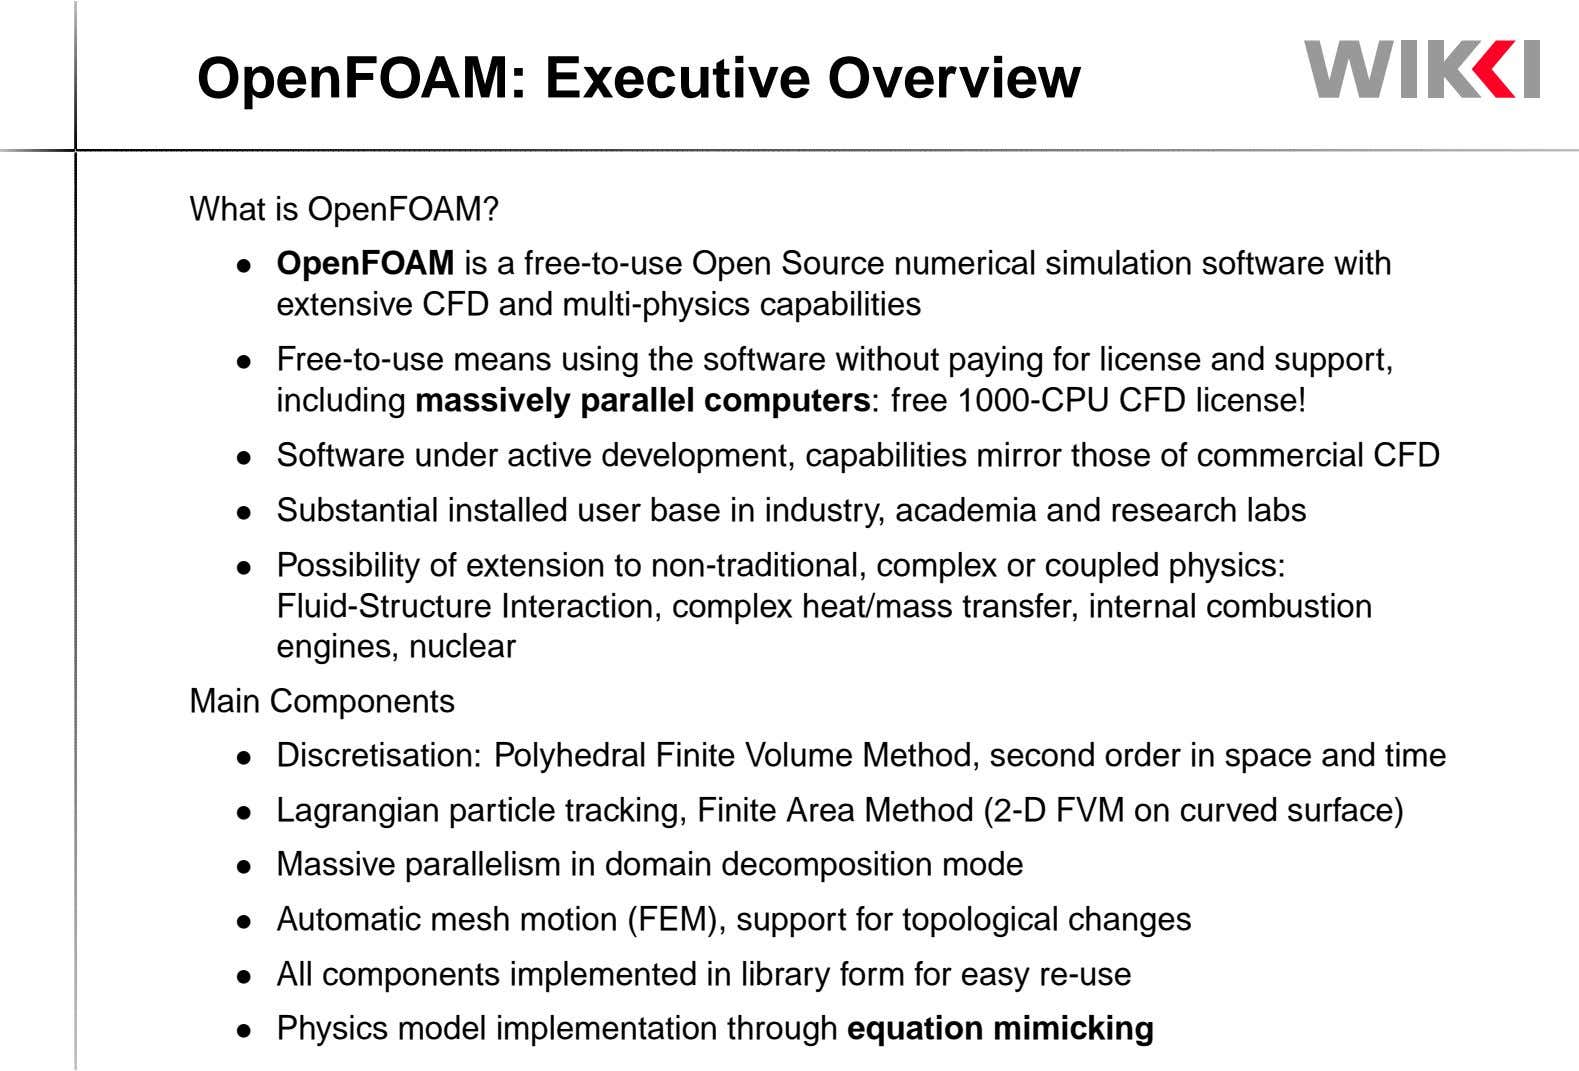 OpenFOAM: Executive Overview What is OpenFOAM? • OpenFOAM is a free-to-use Open Source numerical simulation software